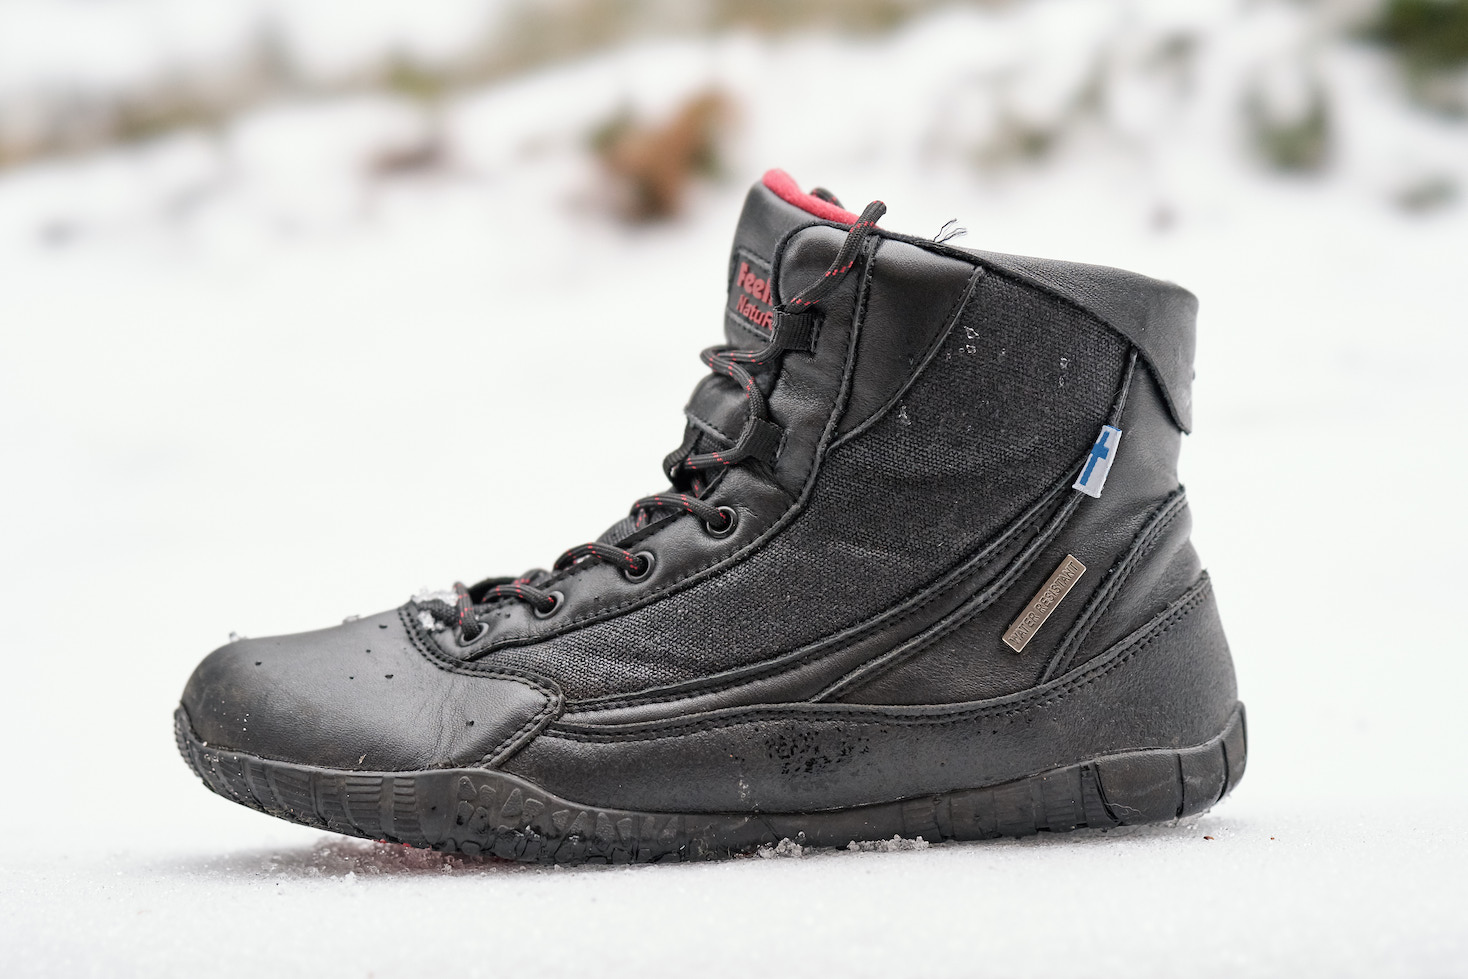 The Kuuva Trek has water-resistant and breathable sections